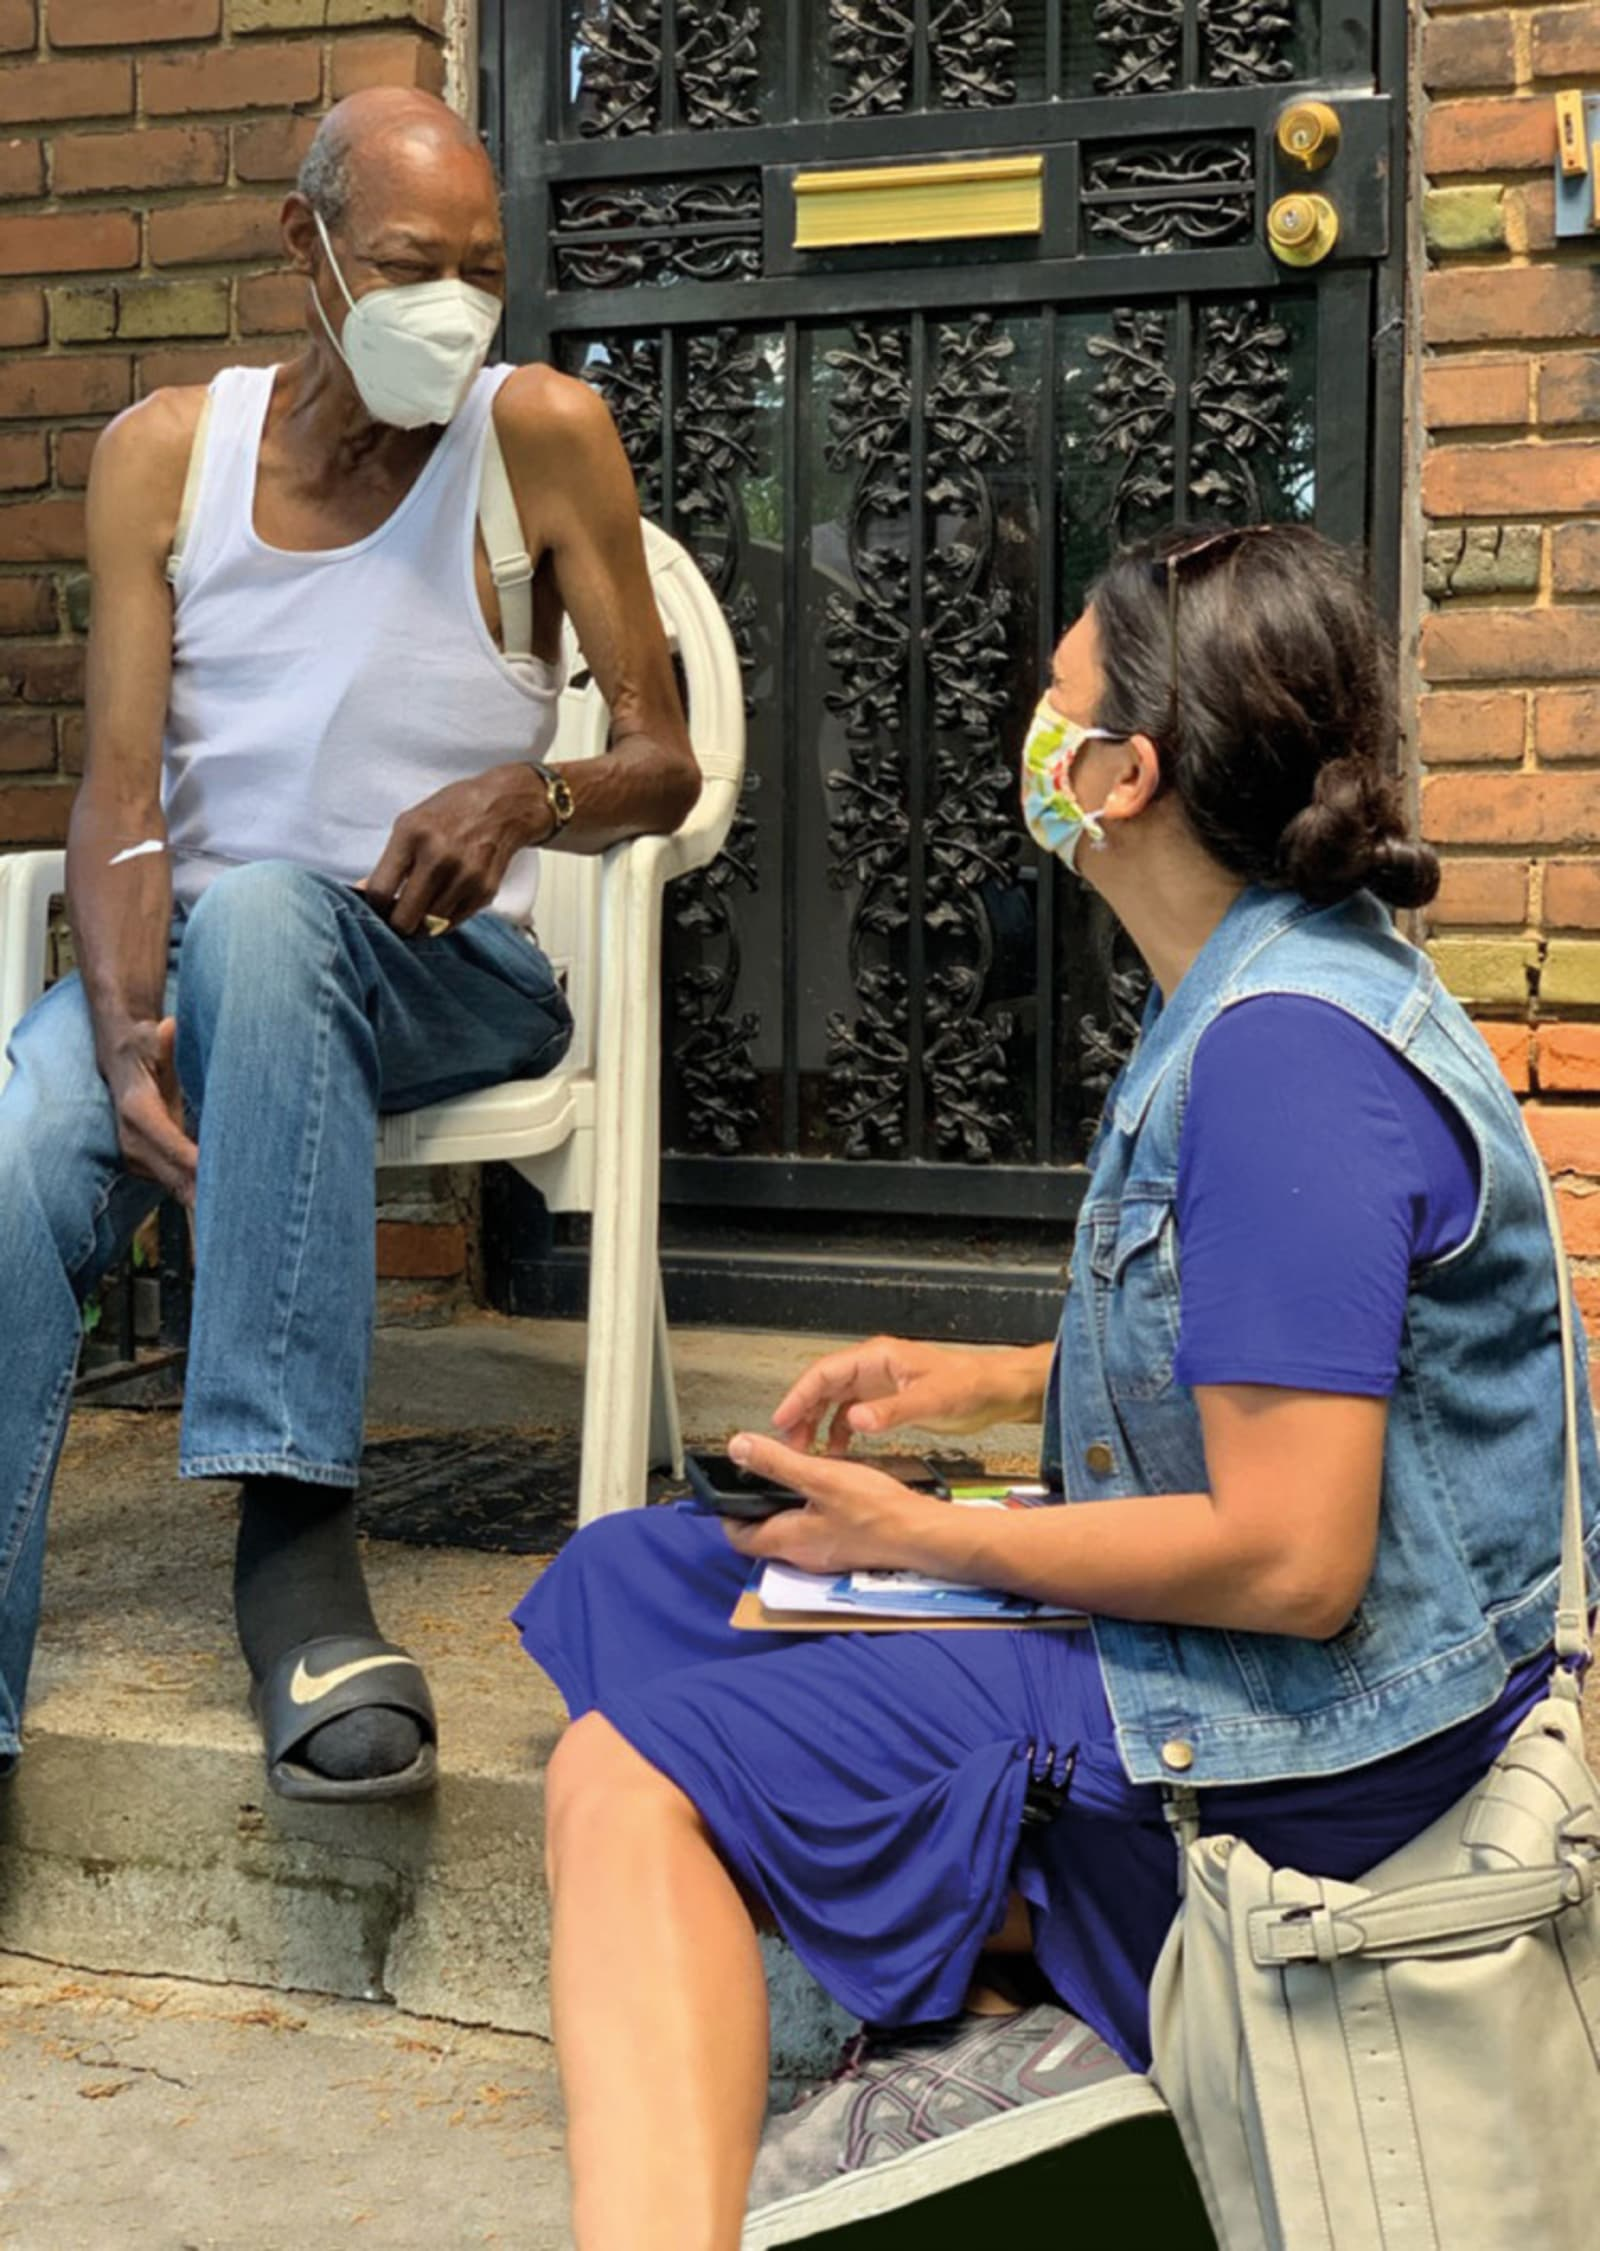 <p><em>The Congresswoman speaking with a Detroit resident. Photo: Supplied</em></p>\n